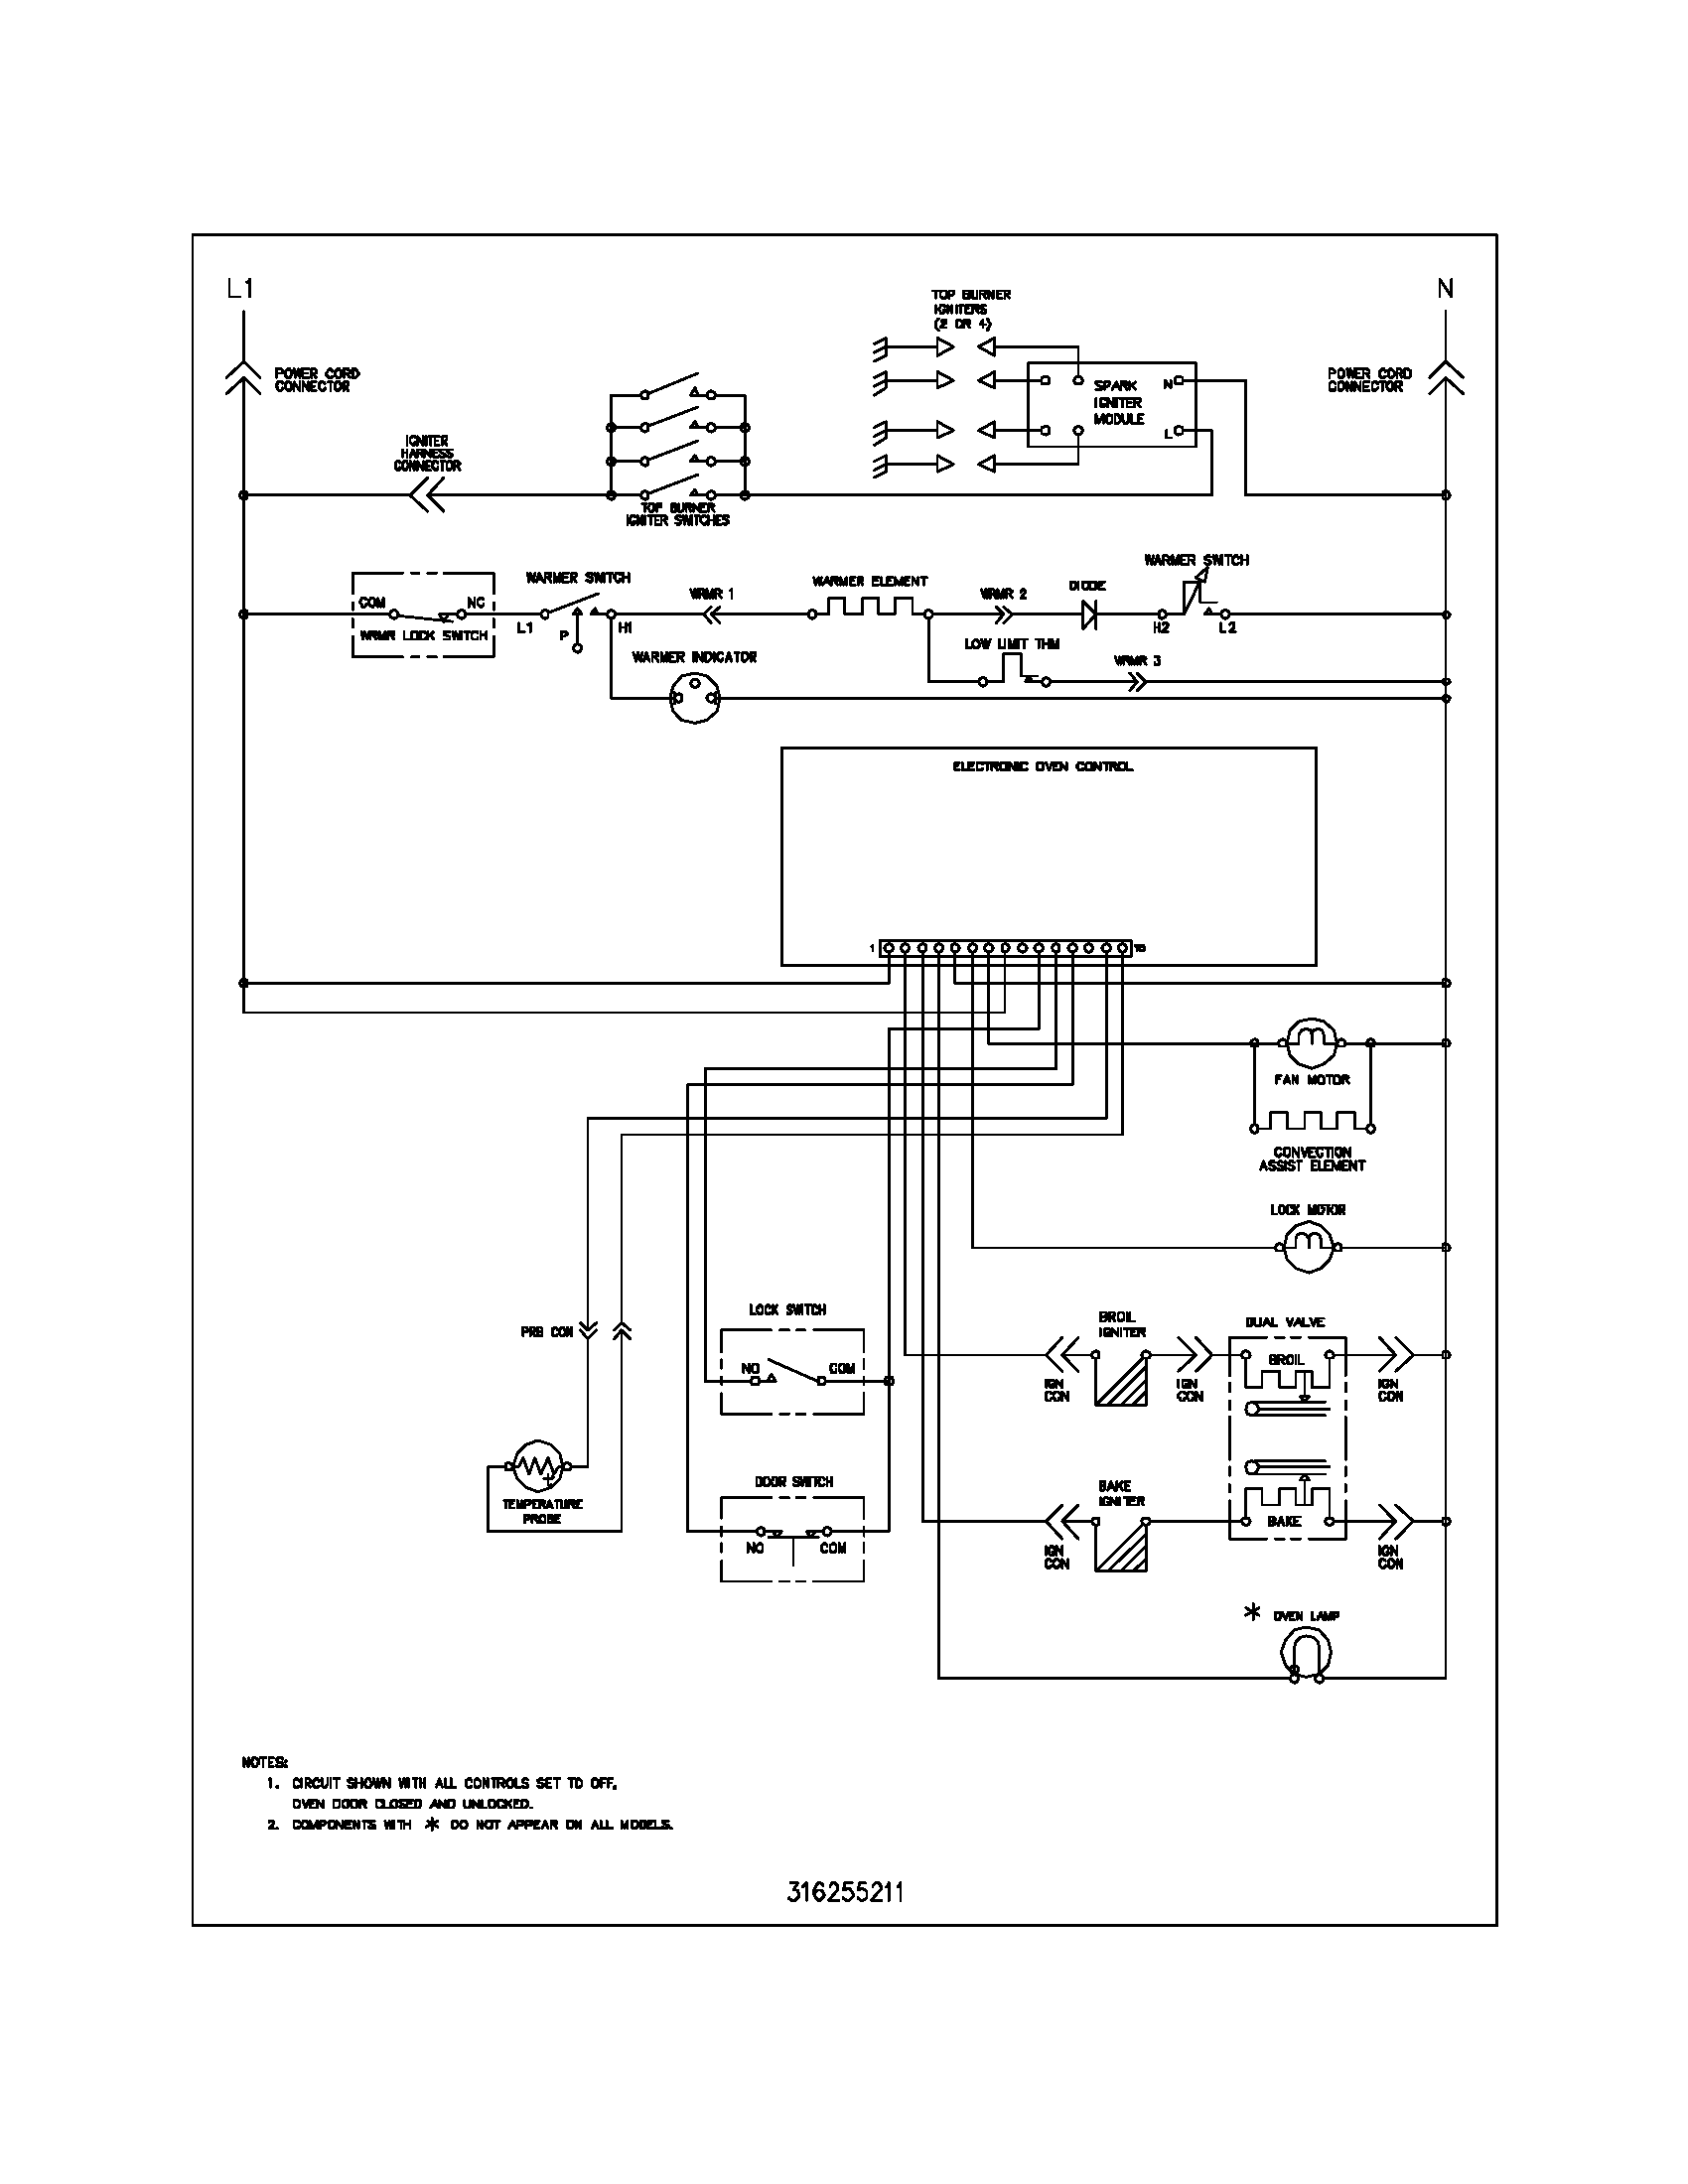 wrg 4671] defrost timer wiring diagram cold roomplgf389ccc gas range wiring schematic parts diagram